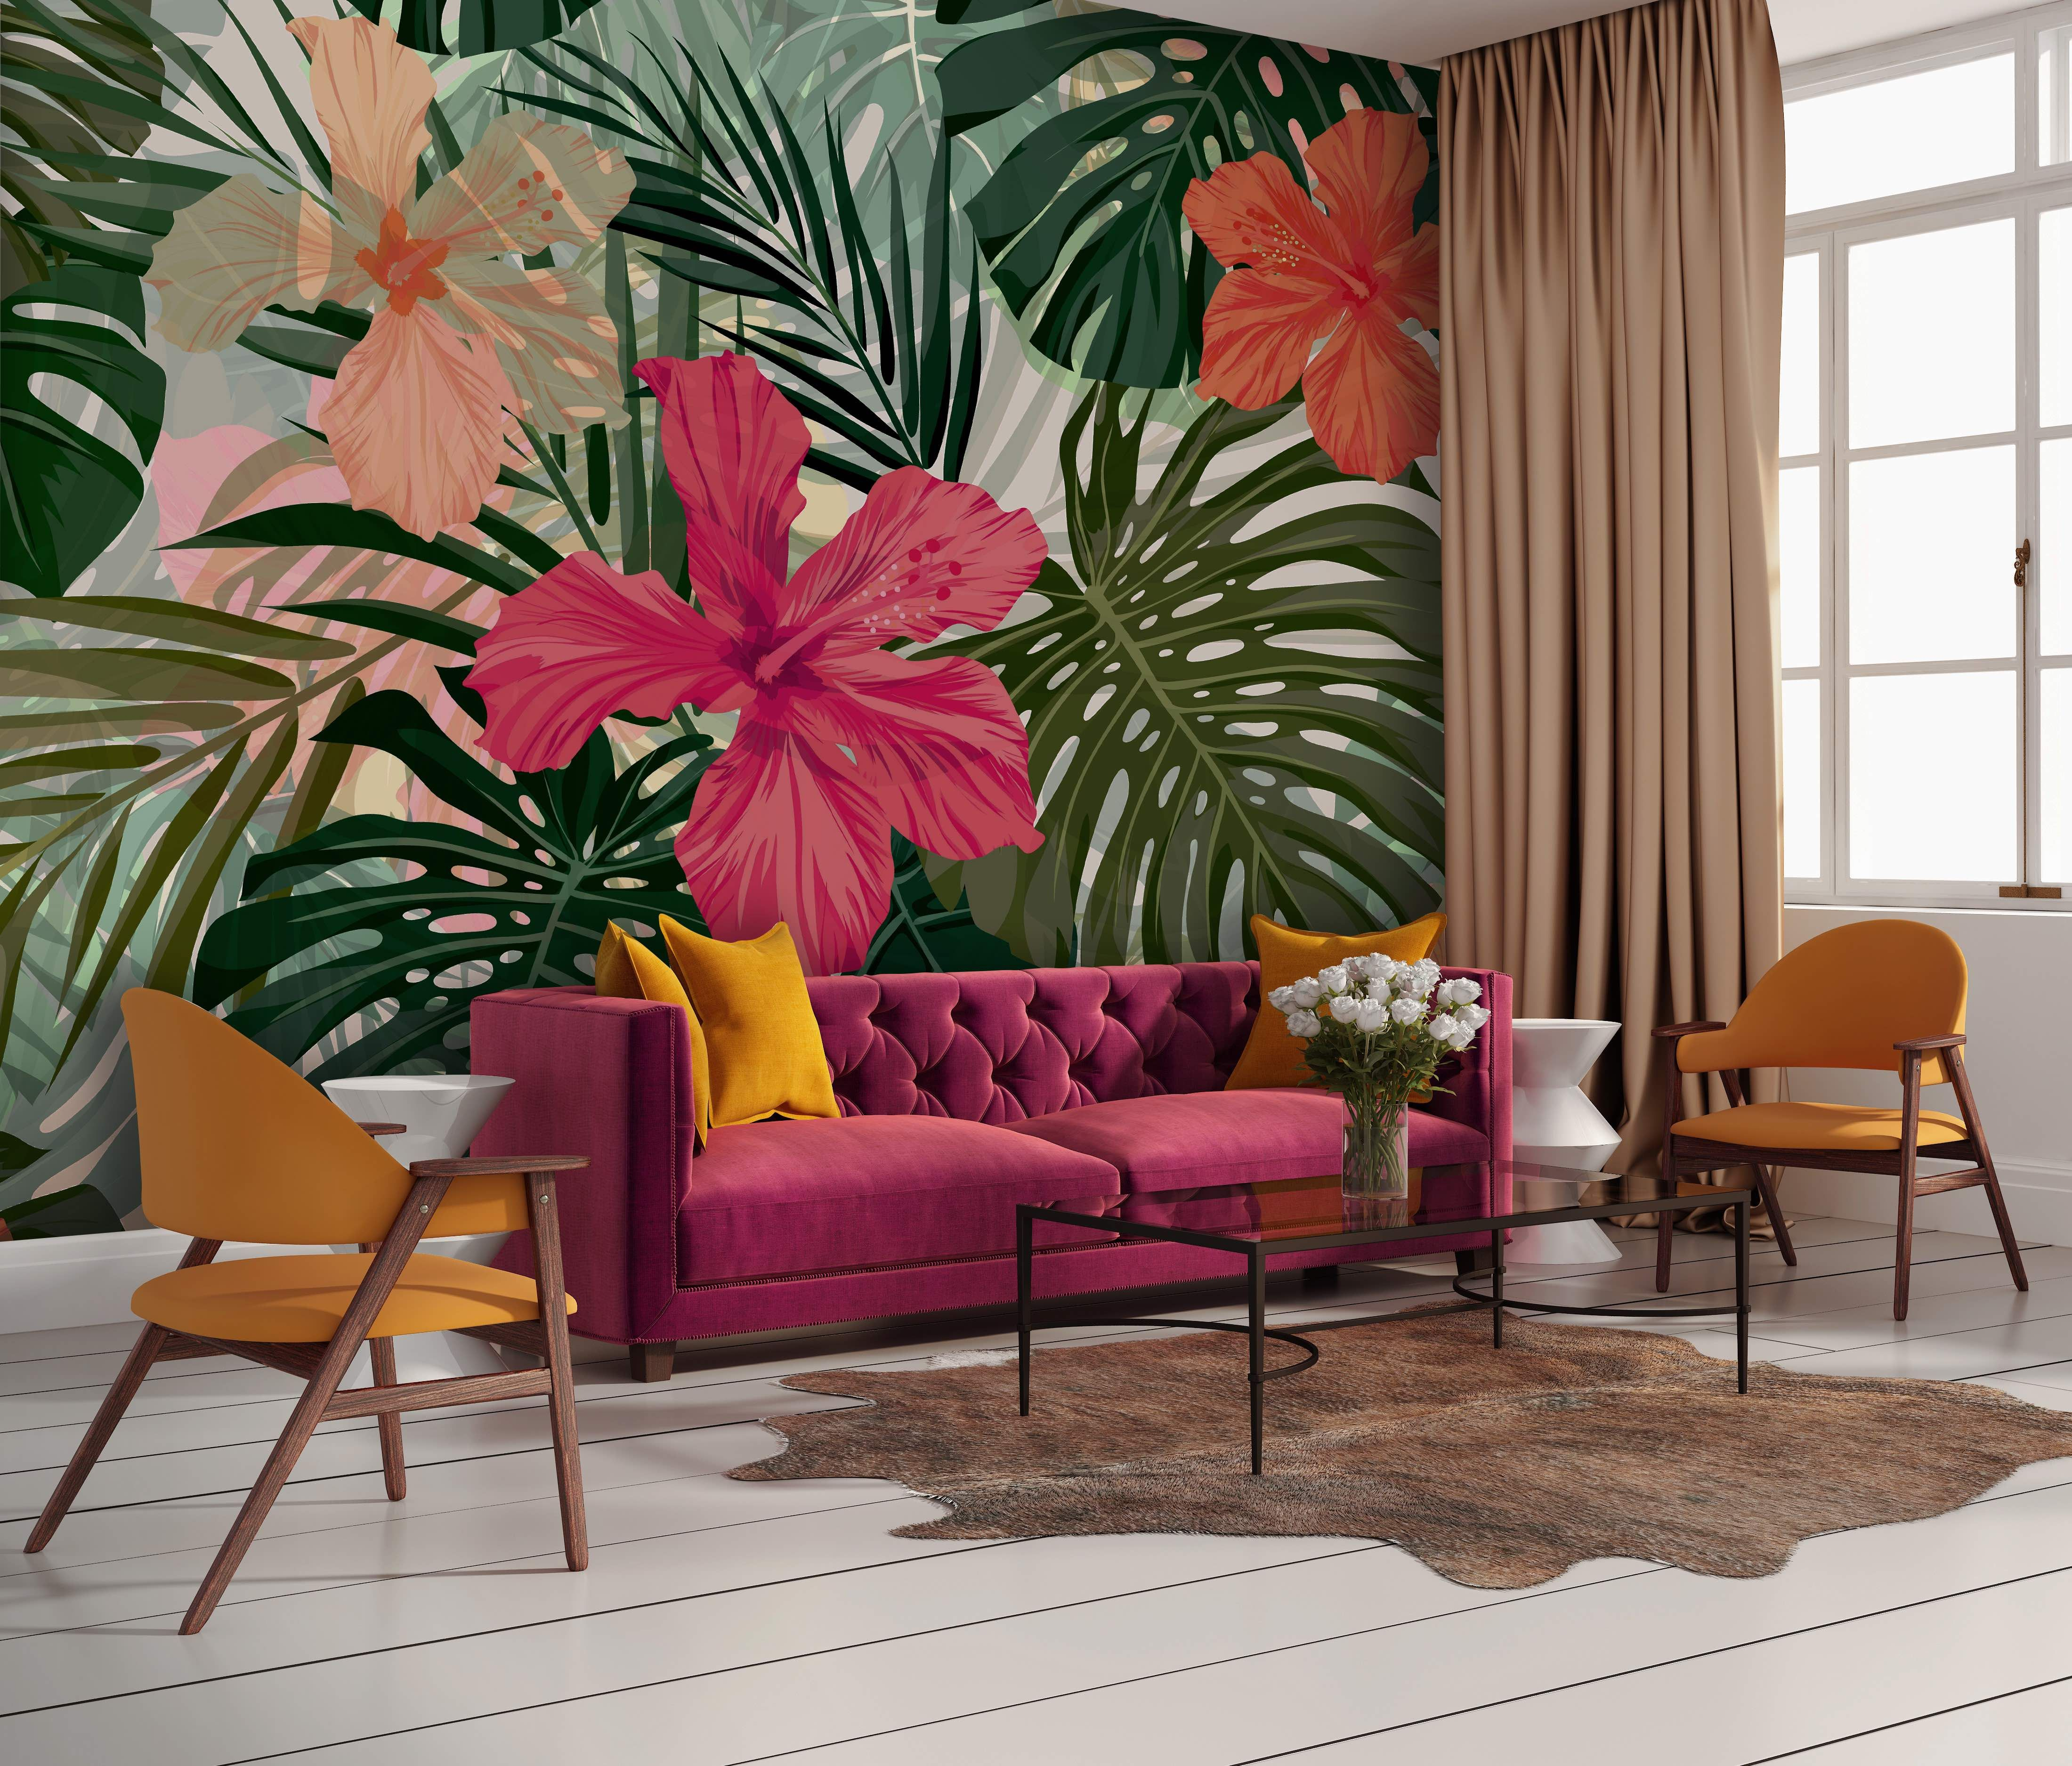 Tropical Mural in Living Room shop now at Walls4U